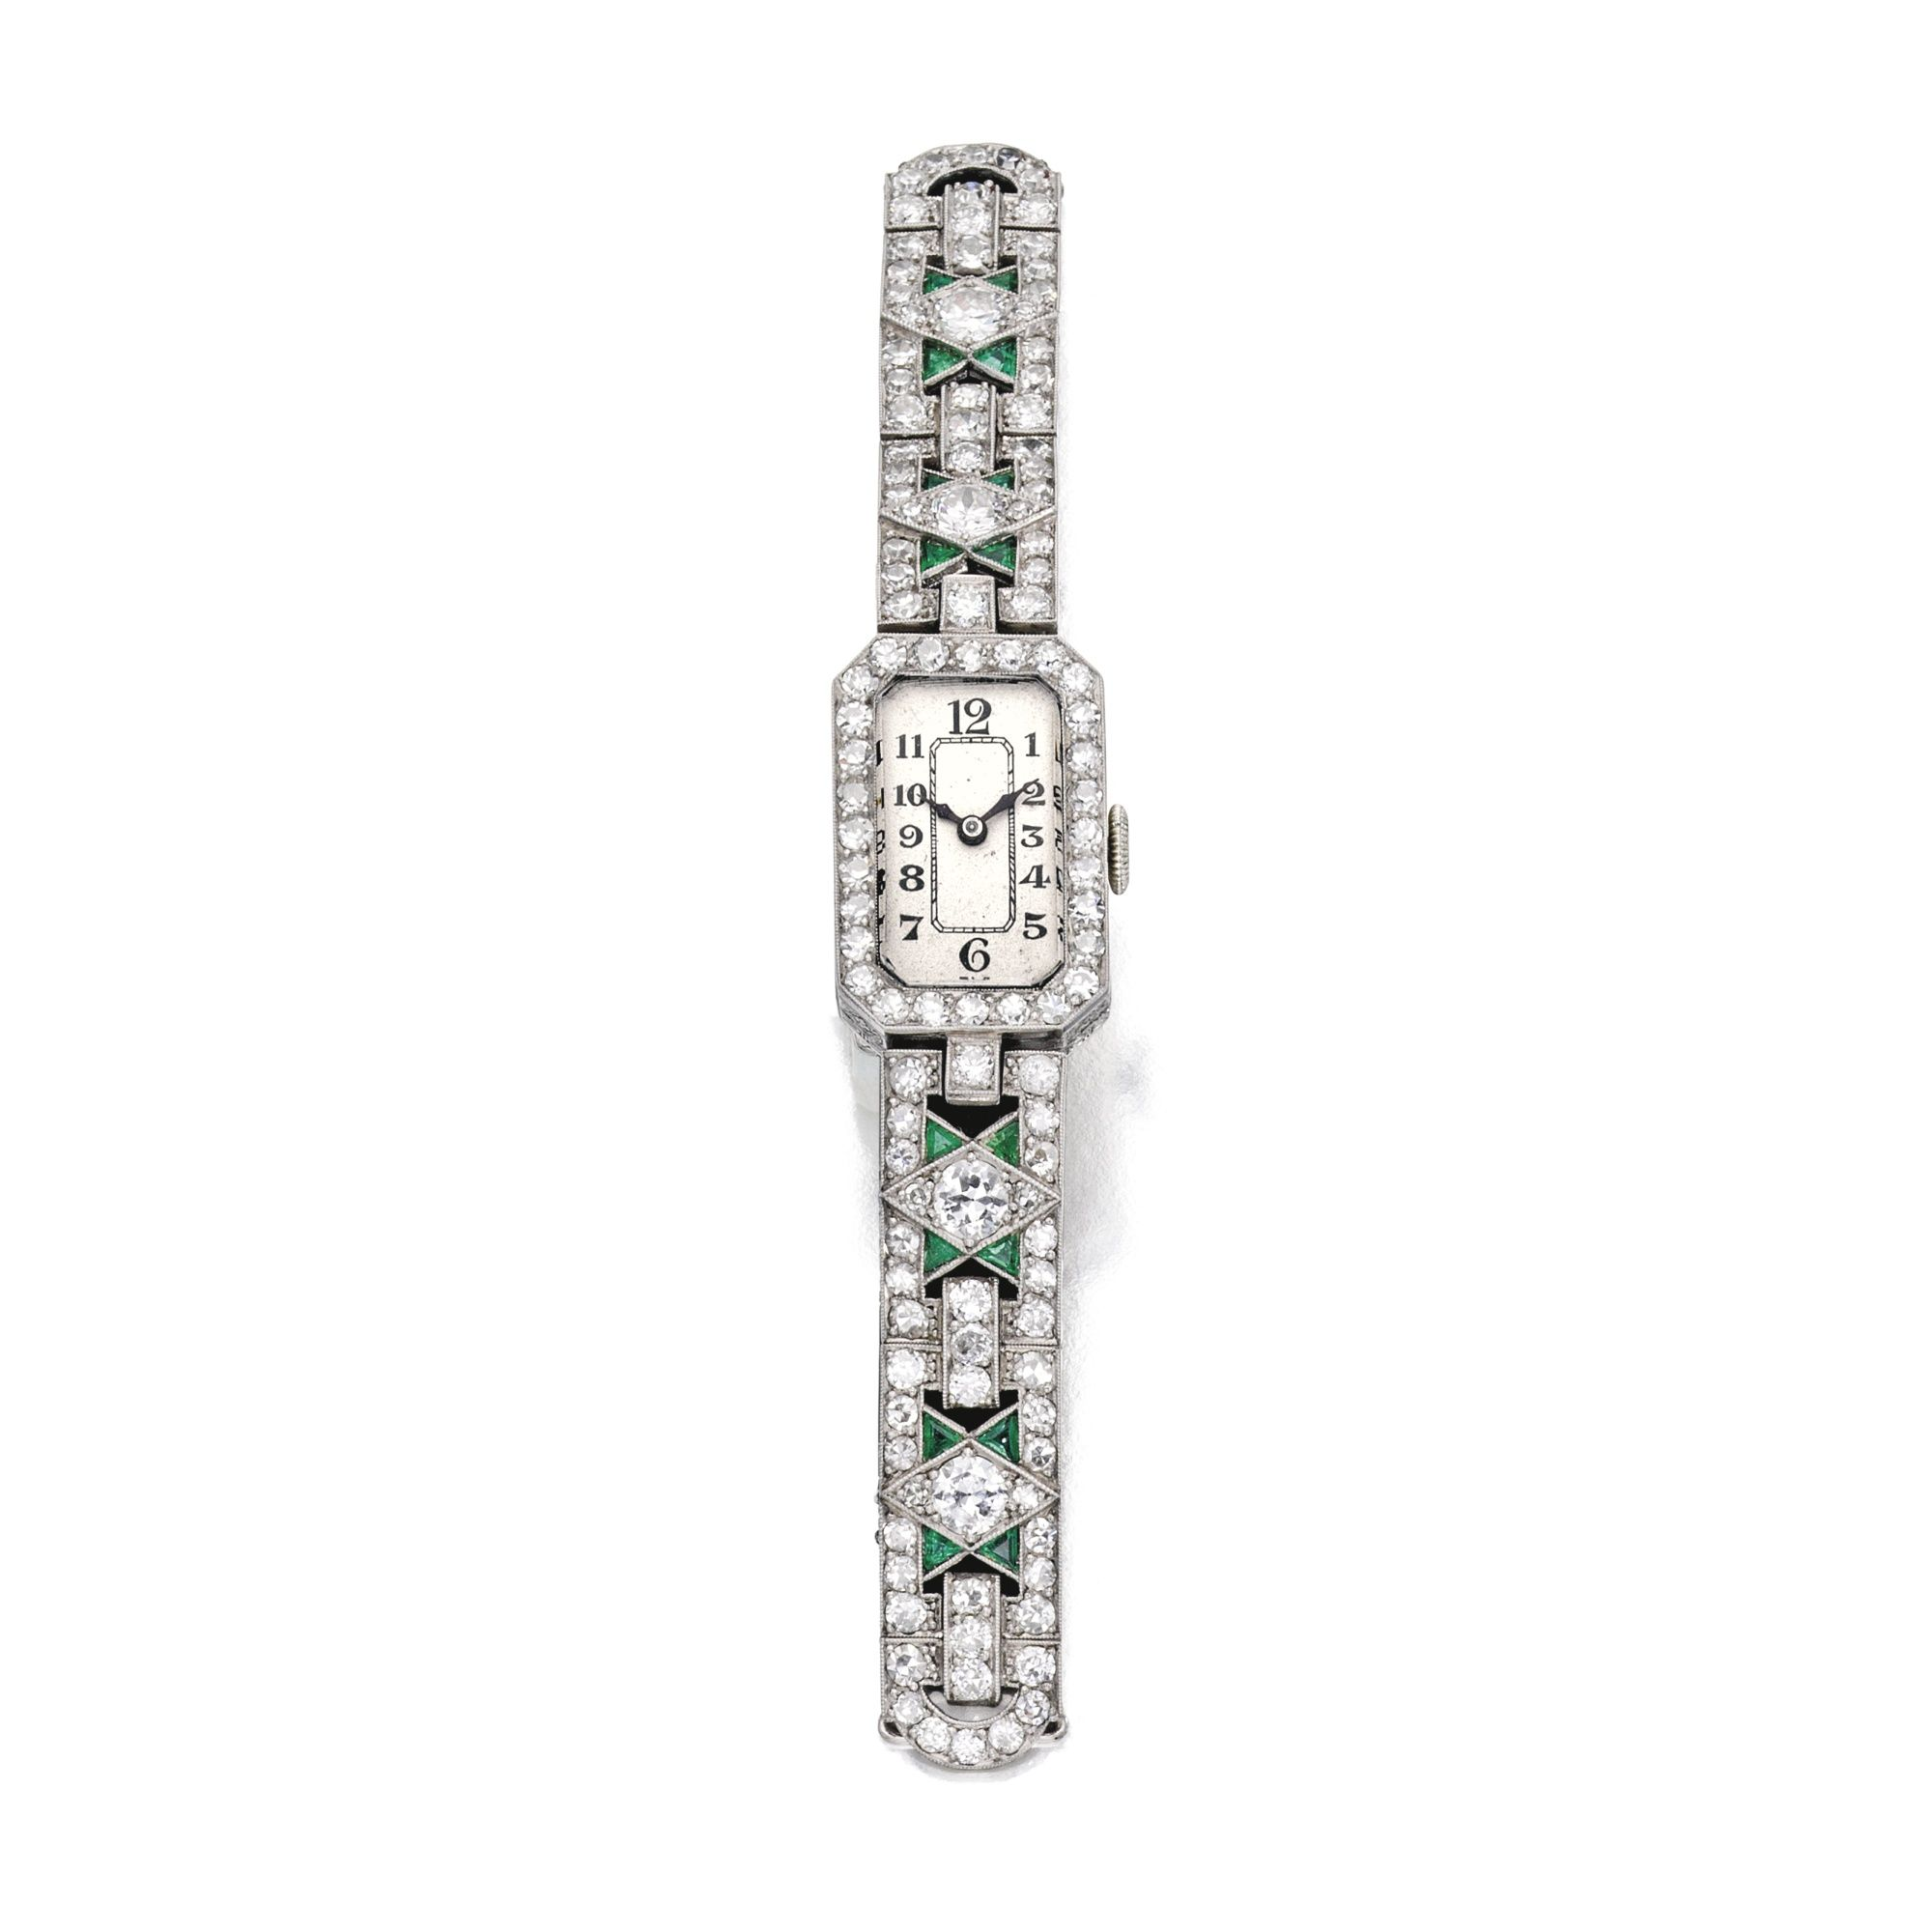 watches graff detailed a secret enquire emerald collections diamonds view emeralds watch timepieces unique